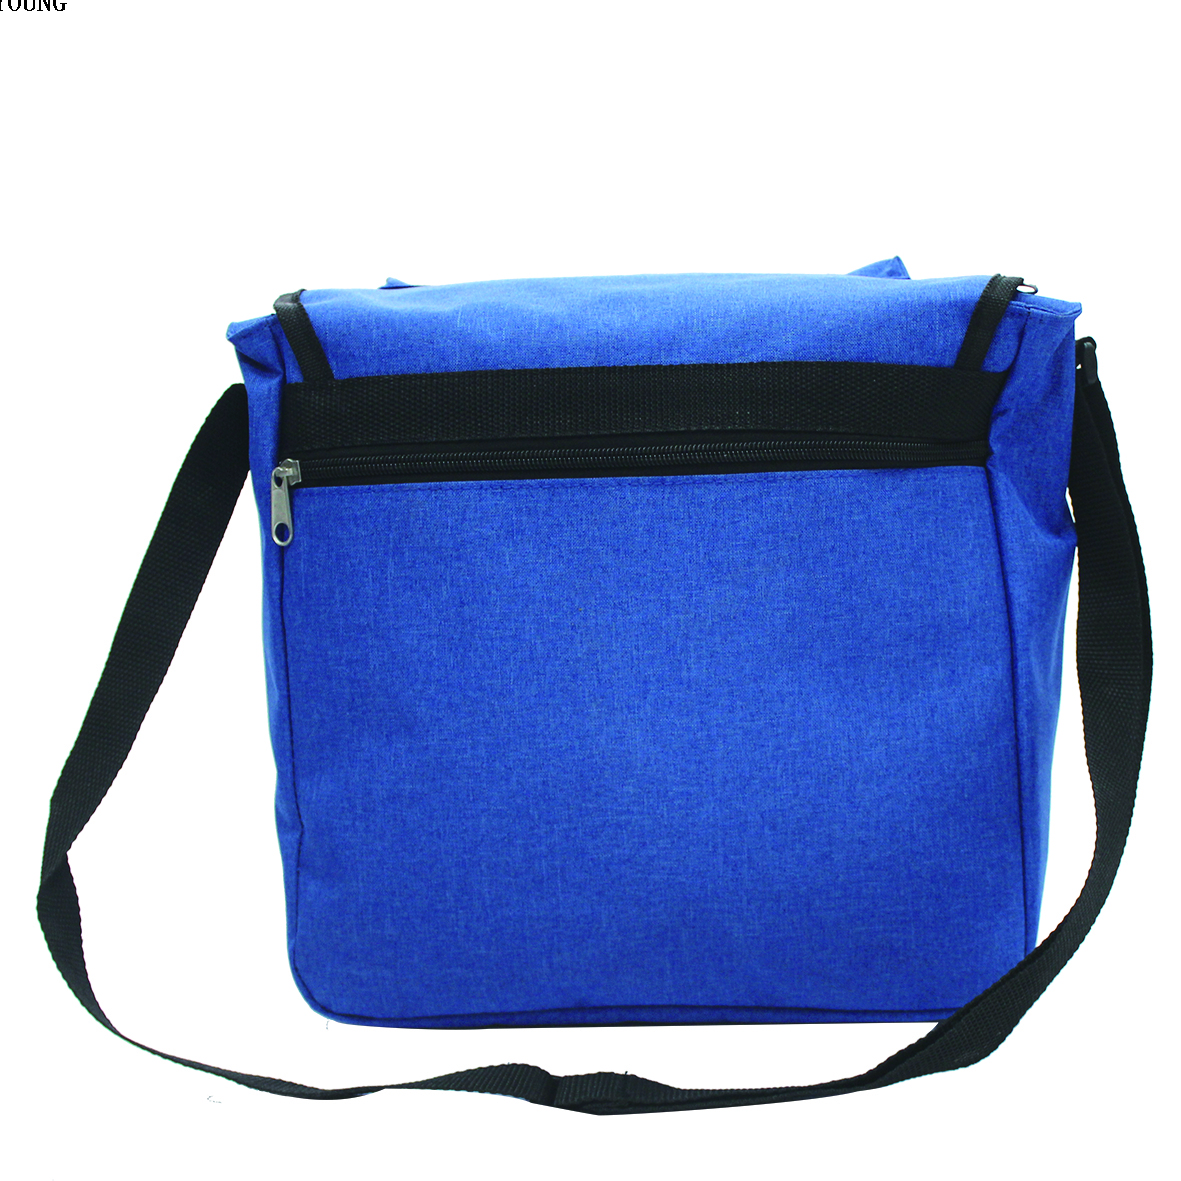 Oem Top Cover Biking Single Shoulder Bag HY19S33